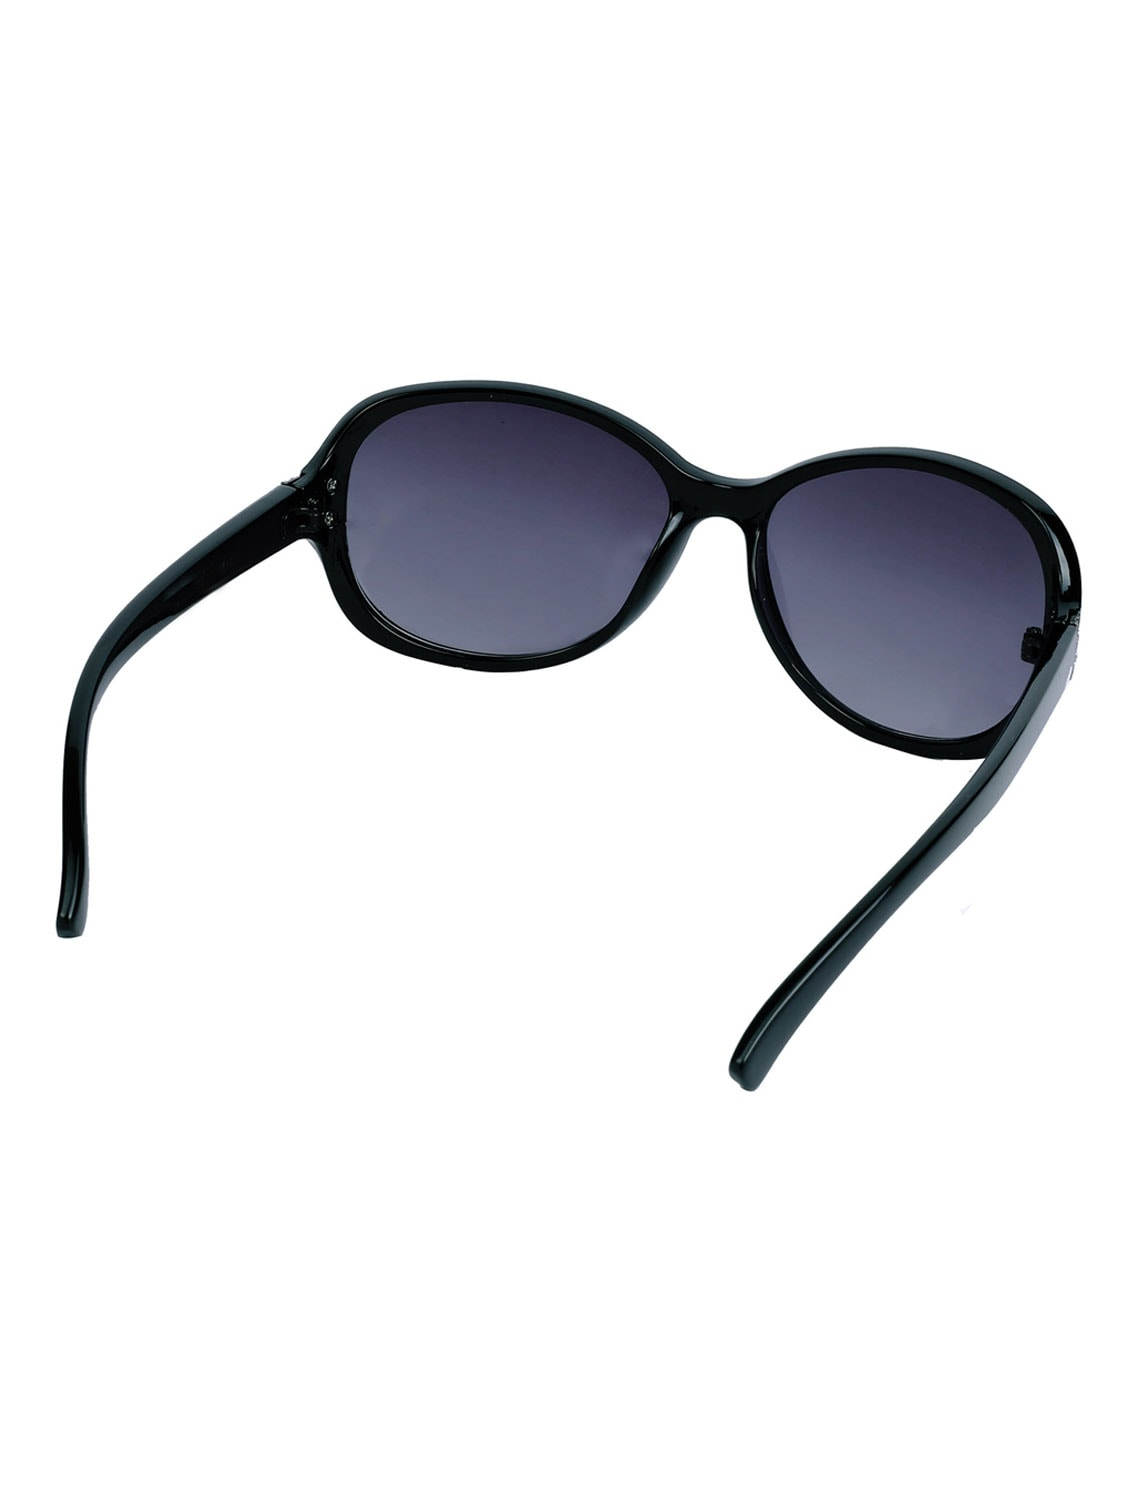 c33ec4ecefb Buy Uv Protected Oval Sunglass by Hawai - Online shopping for Sunglasses in  India